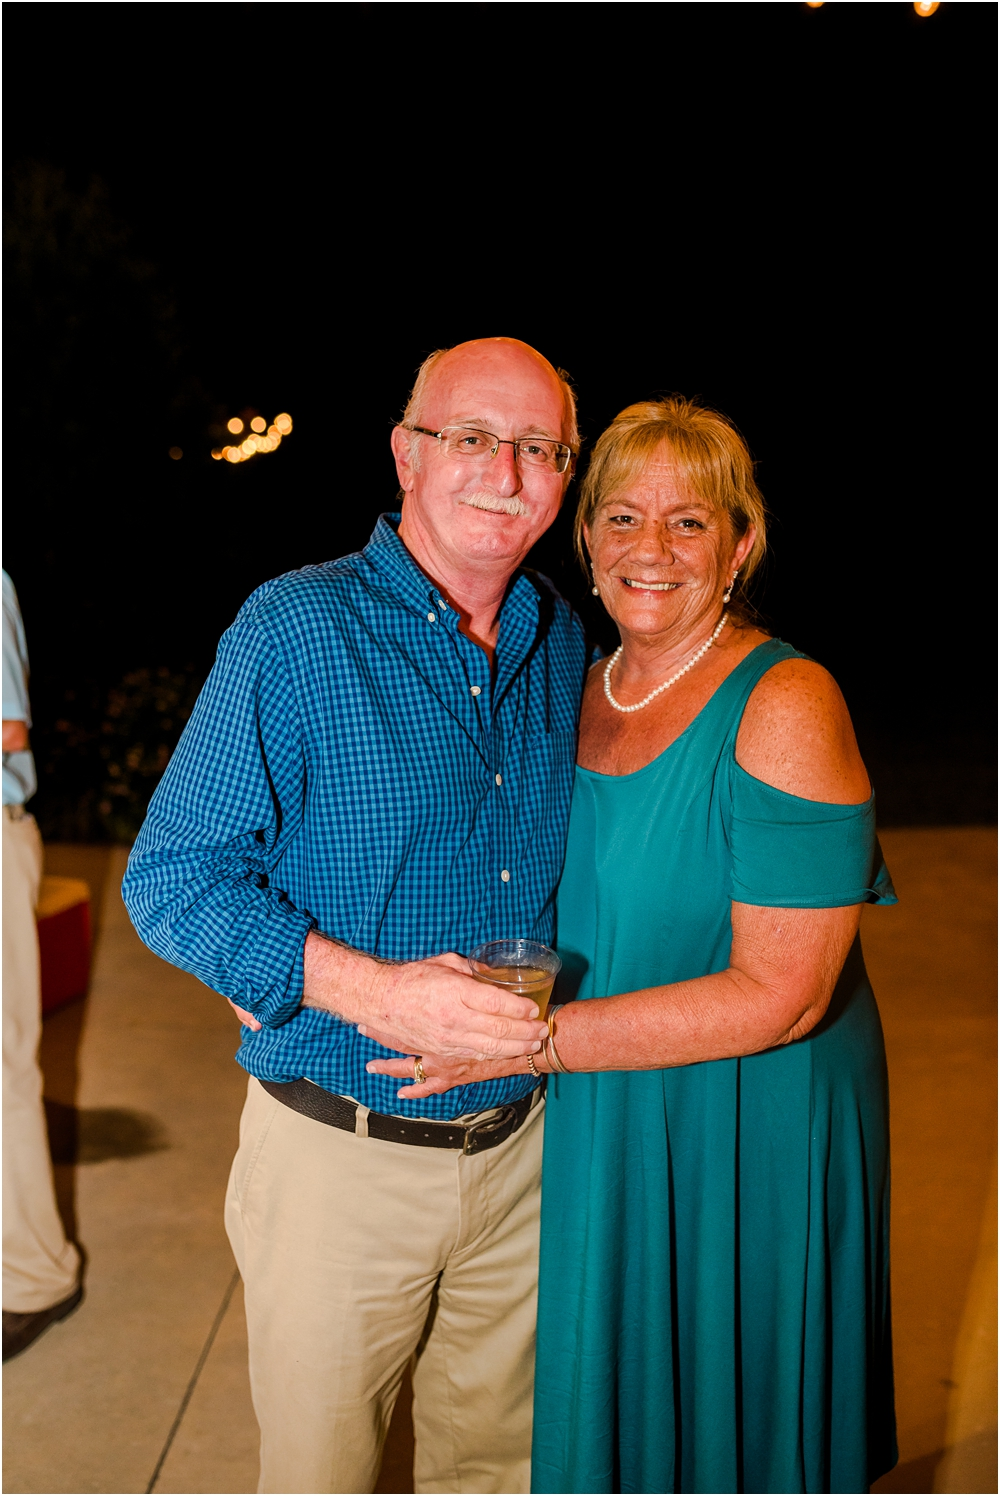 matthew-wedding-kiersten-stevenson-photography-30a-panama-city-beach-dothan-tallahassee-(548-of-579).JPG